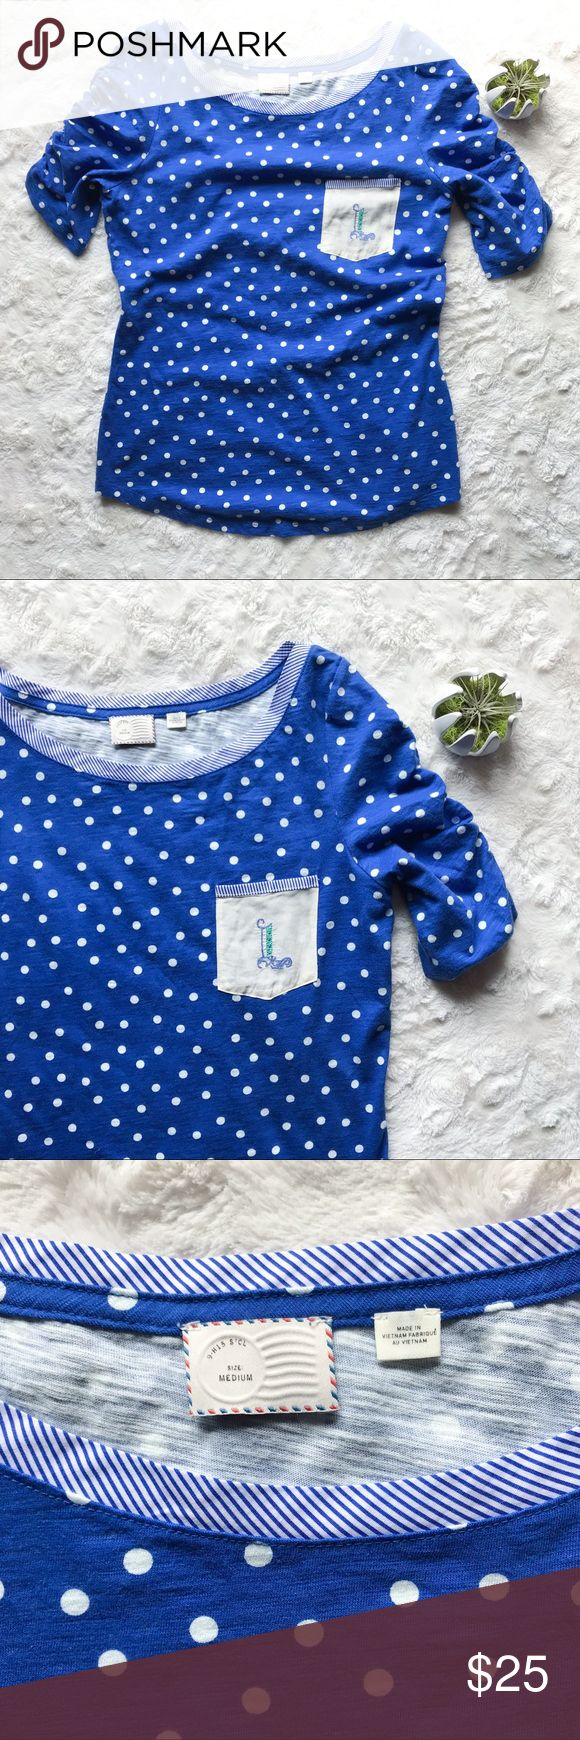 {Anthropologie} 'L' Monogrammed Pocket Tee Blue polka dot tee with lots of details. Ruched sleeves each have a button on the end. The wide collar has a striped blue fabric. The pocket on the tee has a monogrammed 'L'.  Brand: Anthropologie Color: Blue and White Fit & Size: M Condition: preloved, great Fabric Type: Cotton. Machine washable.  O51 Anthropologie Tops Tees - Short Sleeve